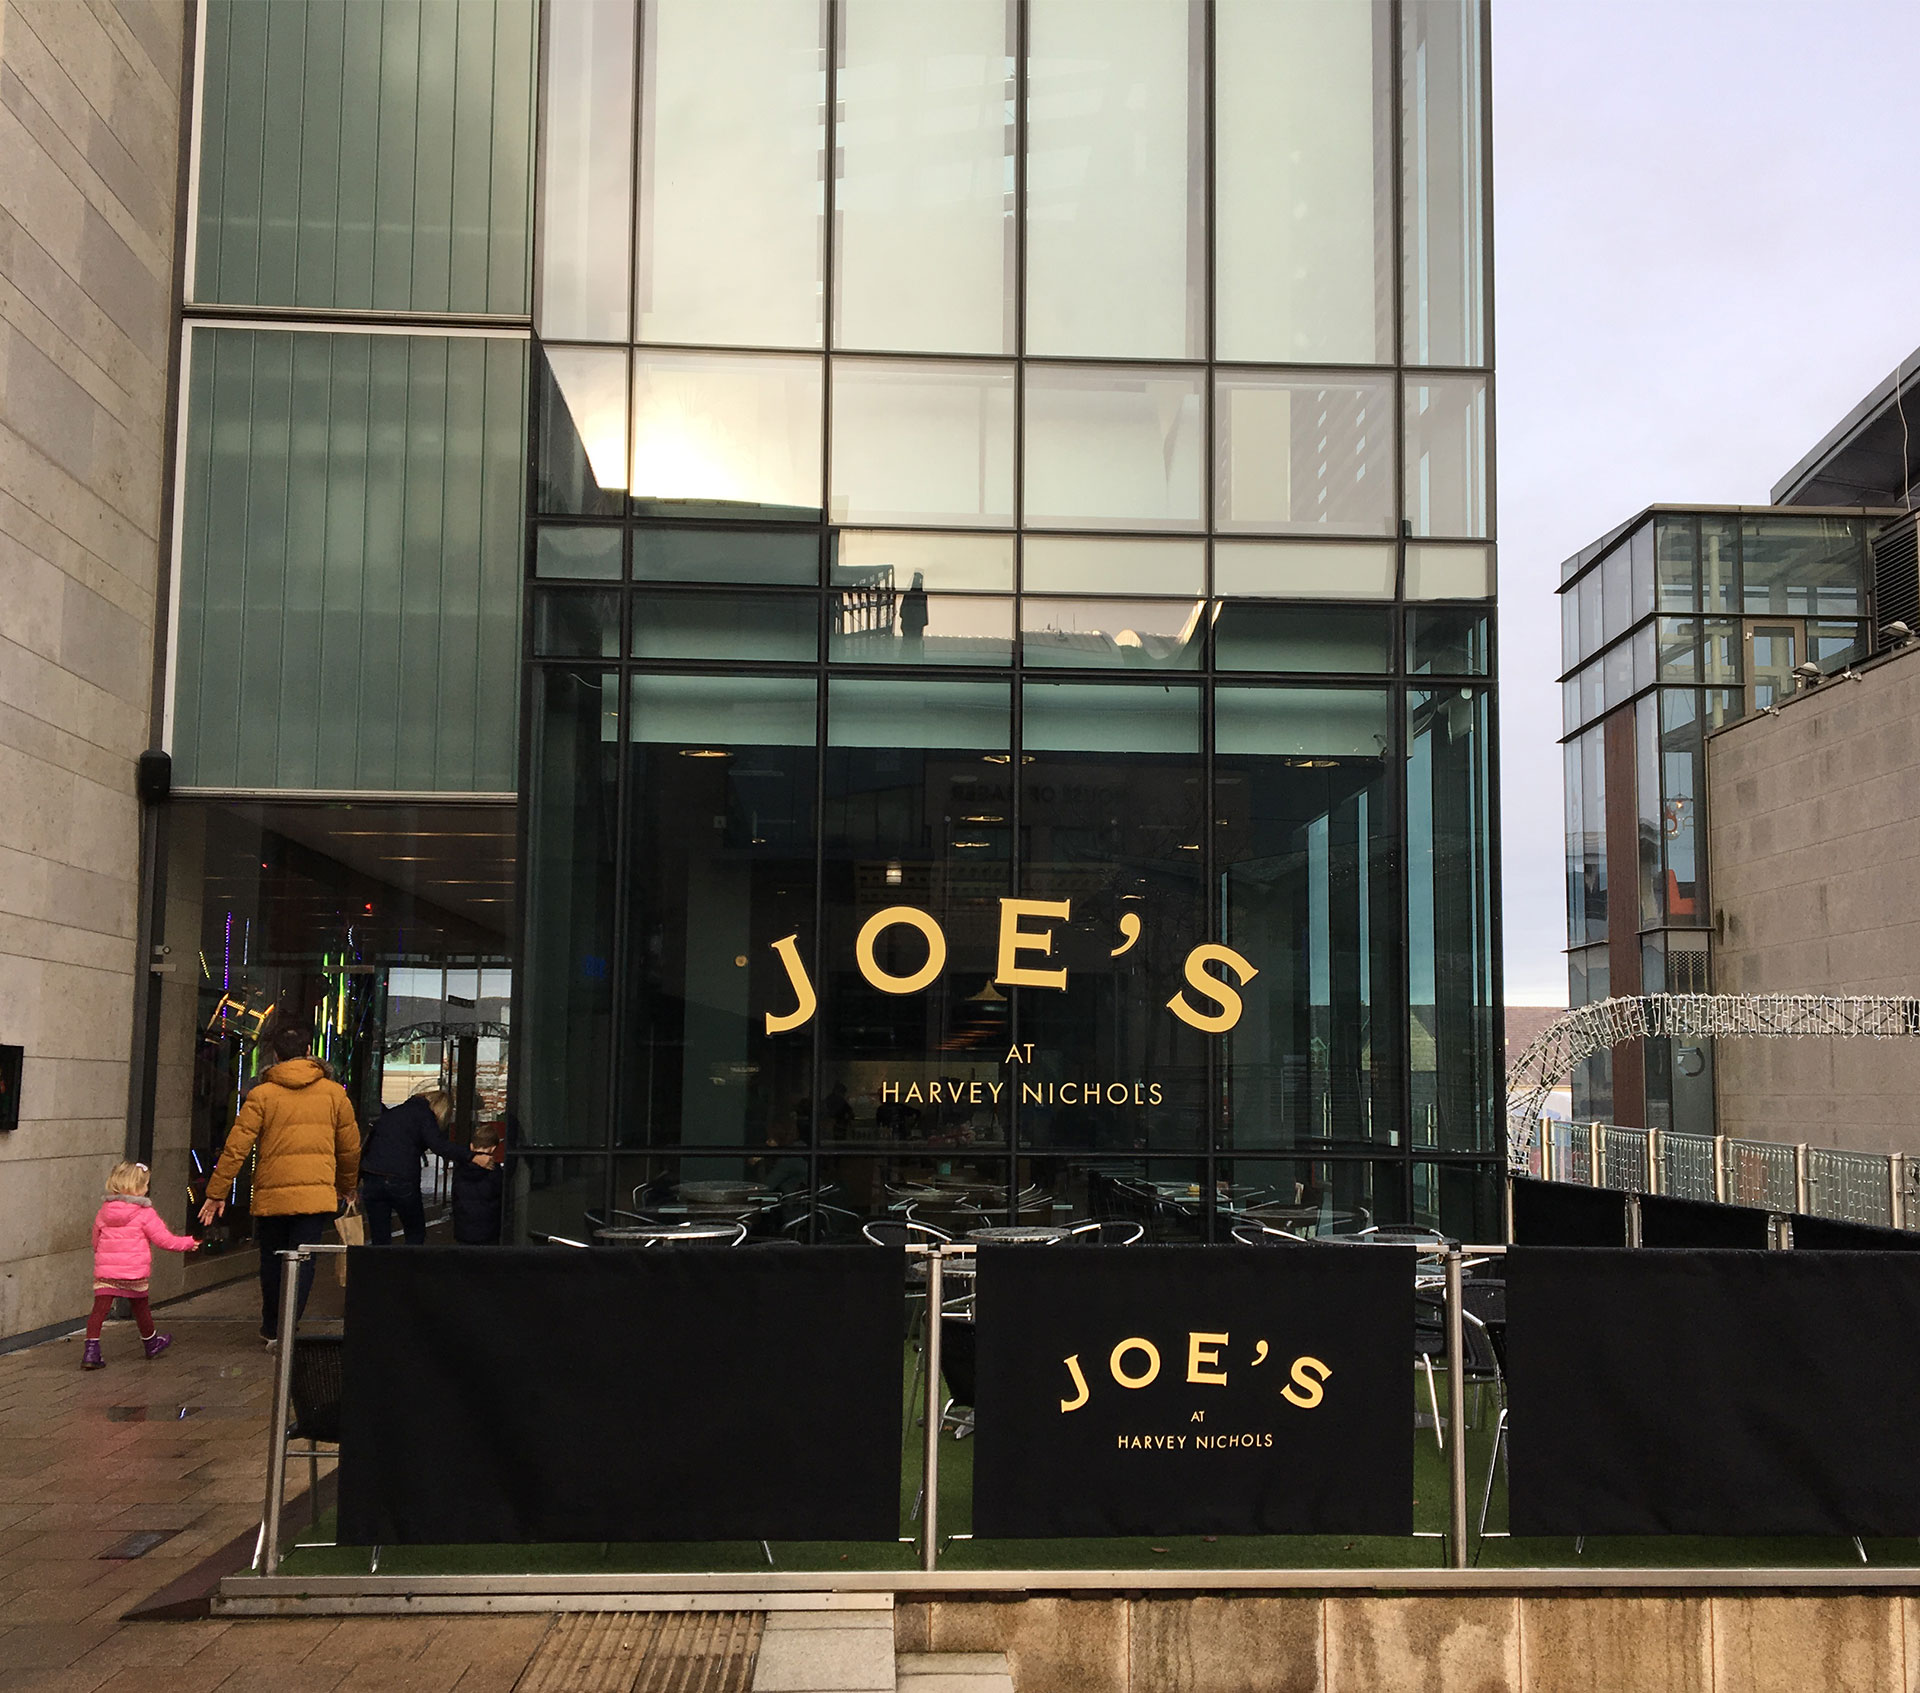 Joe's Harvey Nichols  Dundrum Town Centre   Dublin 14   Map